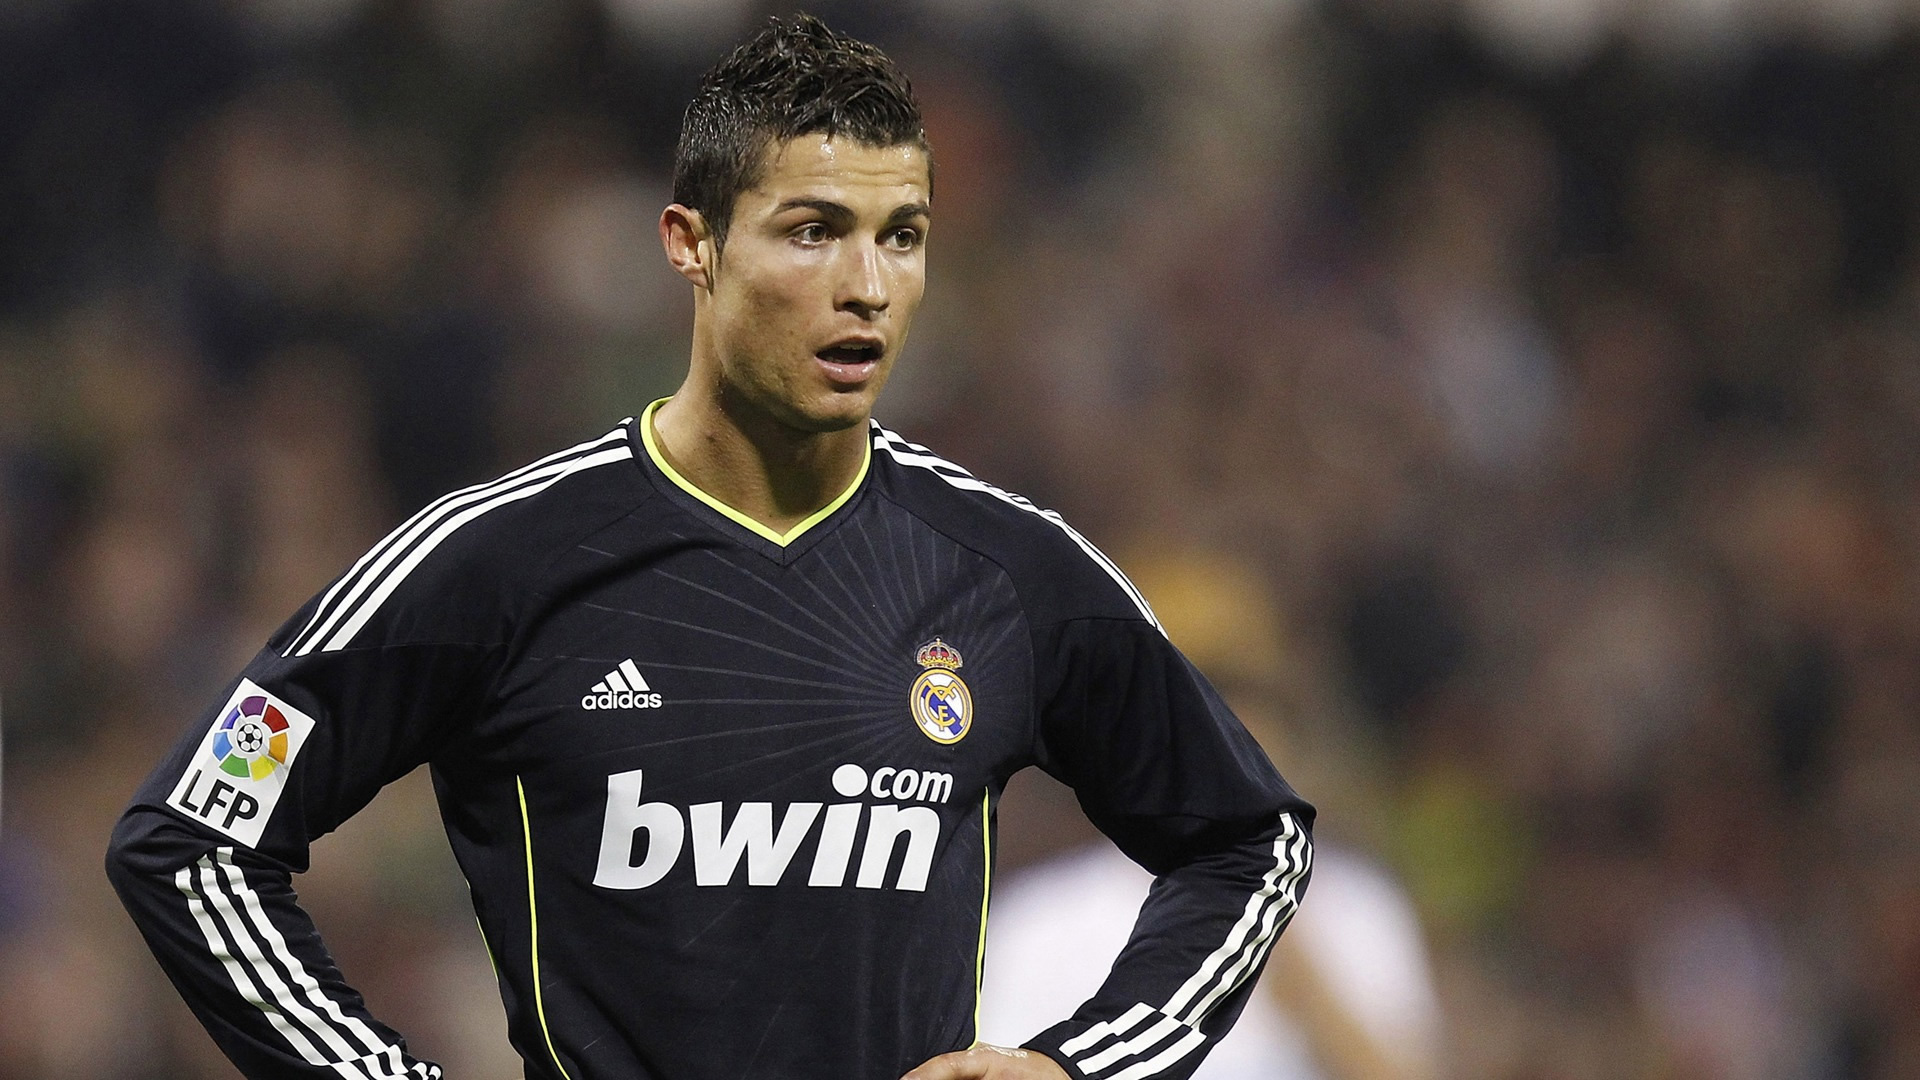 Cristiano Ronaldo black Real Madrid jersey wallpaper